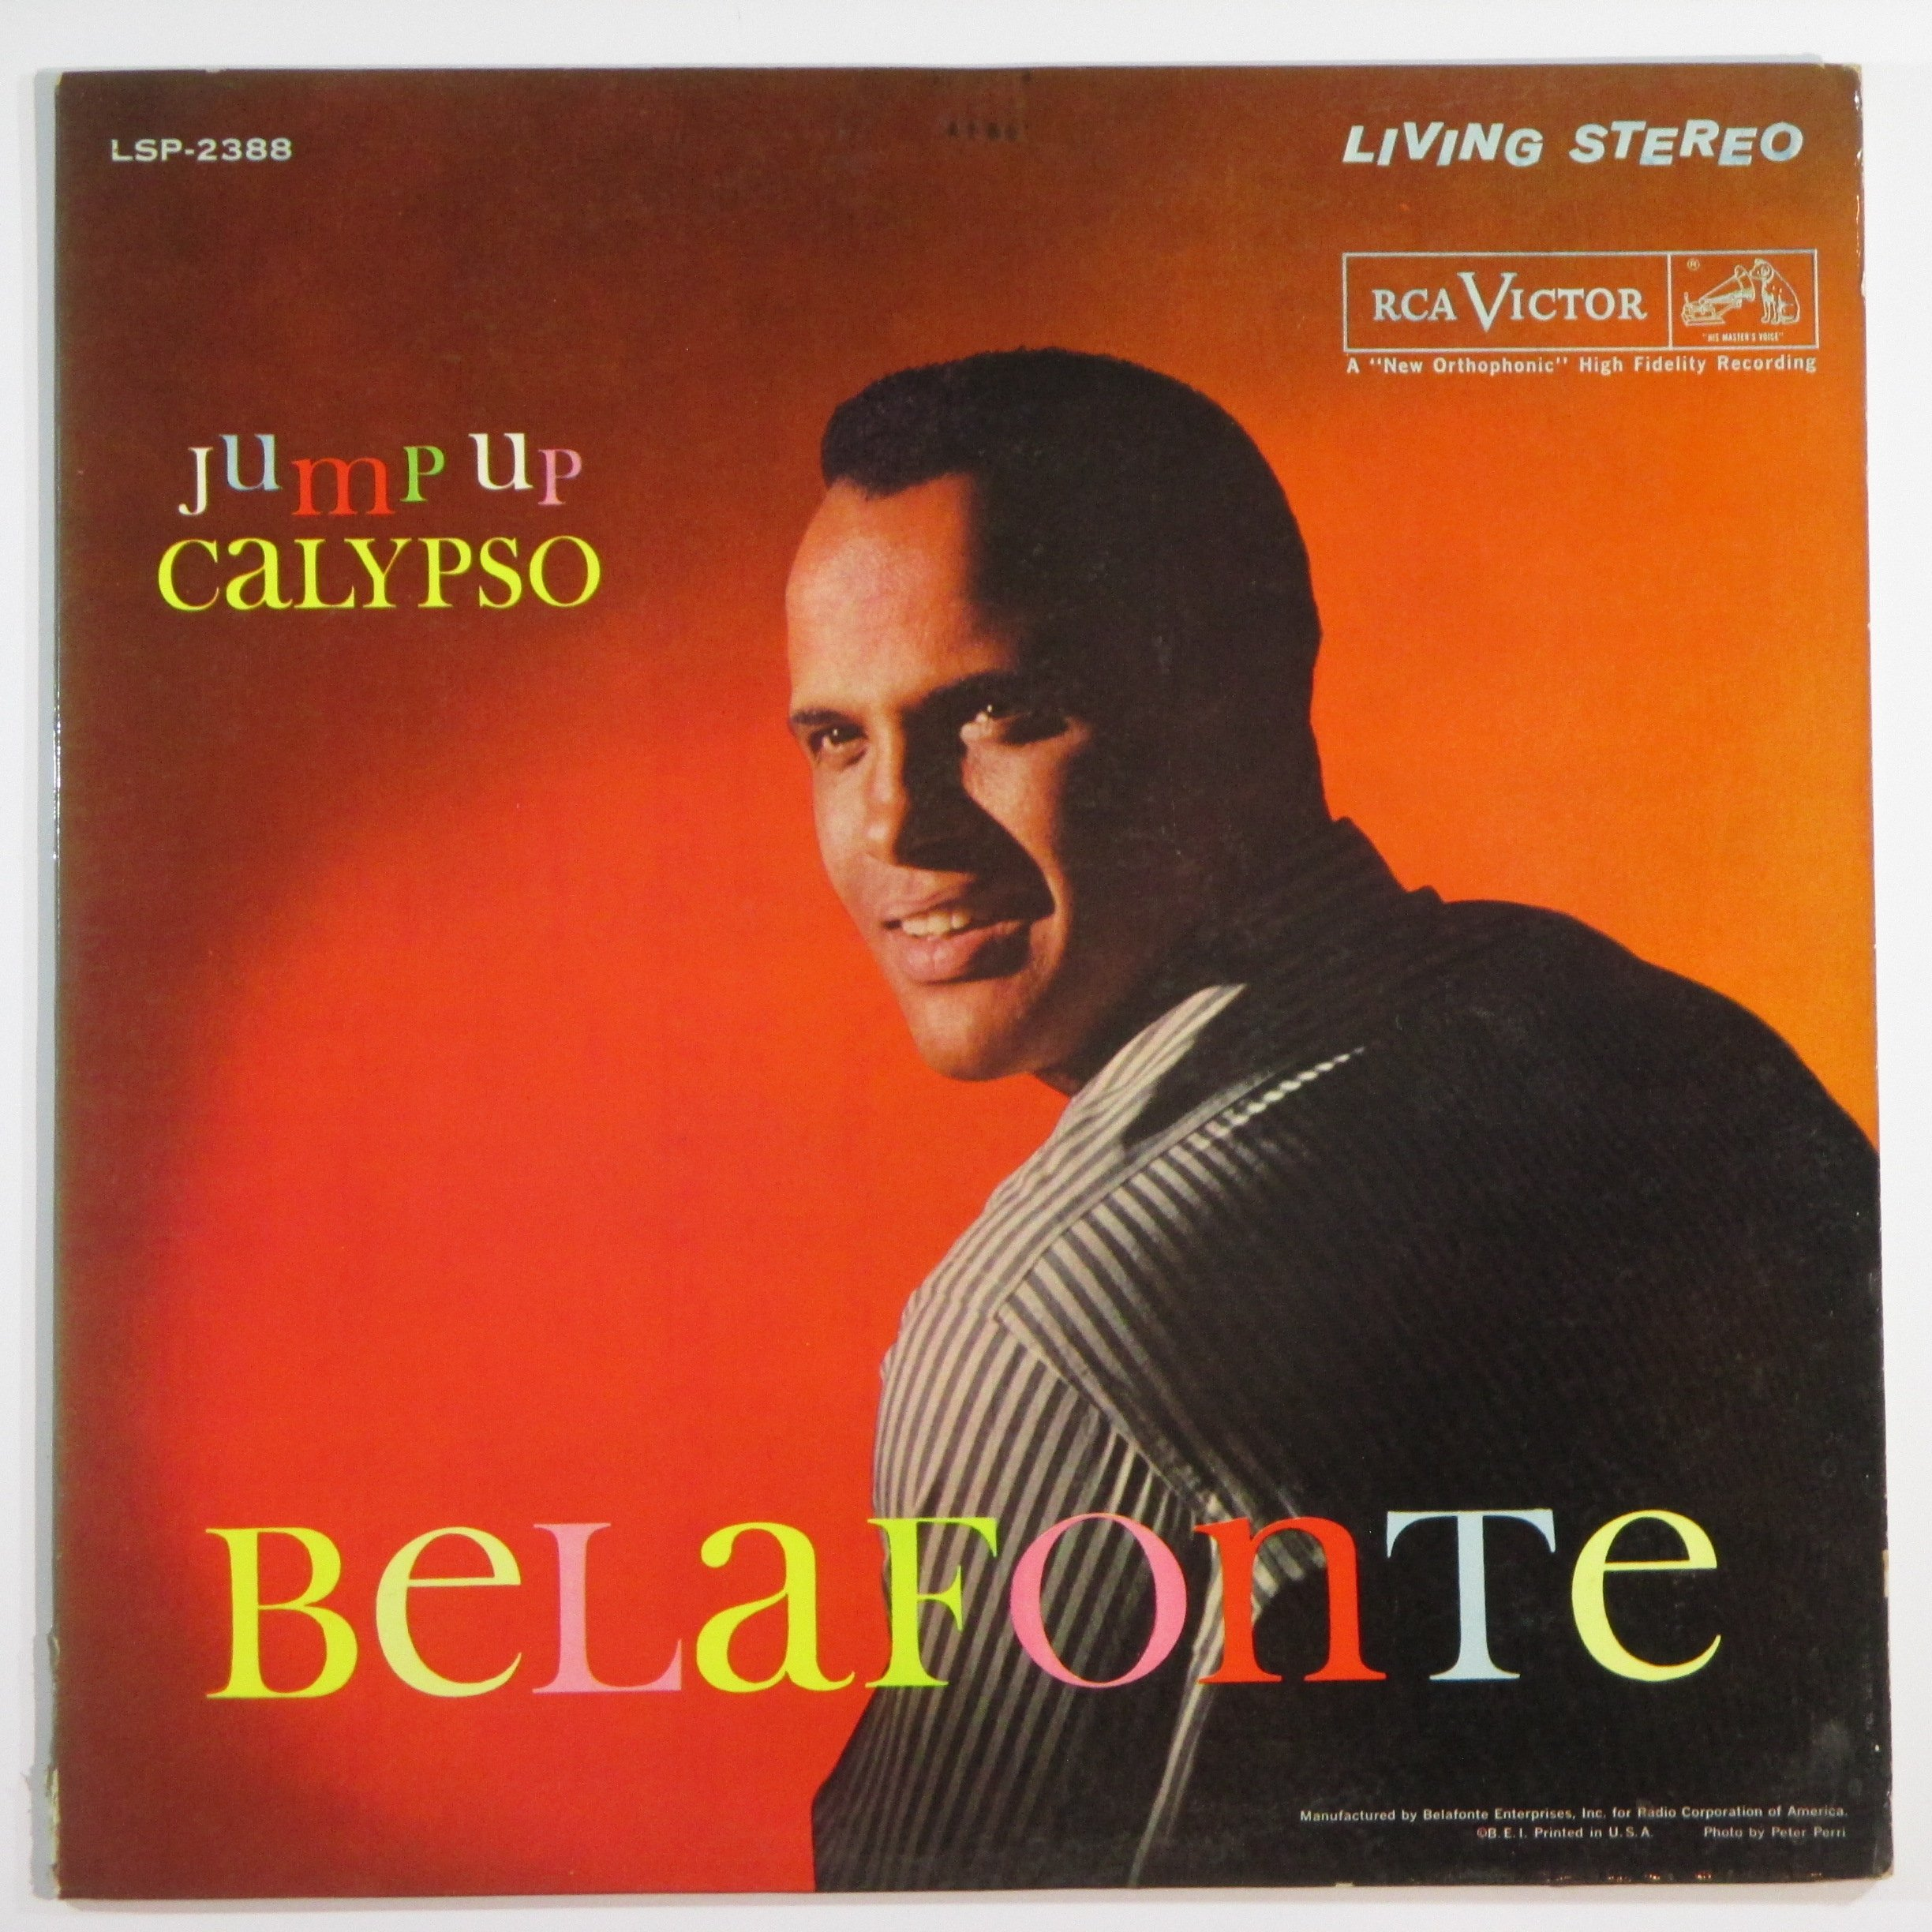 Jump Up Calypso by RCA Victor